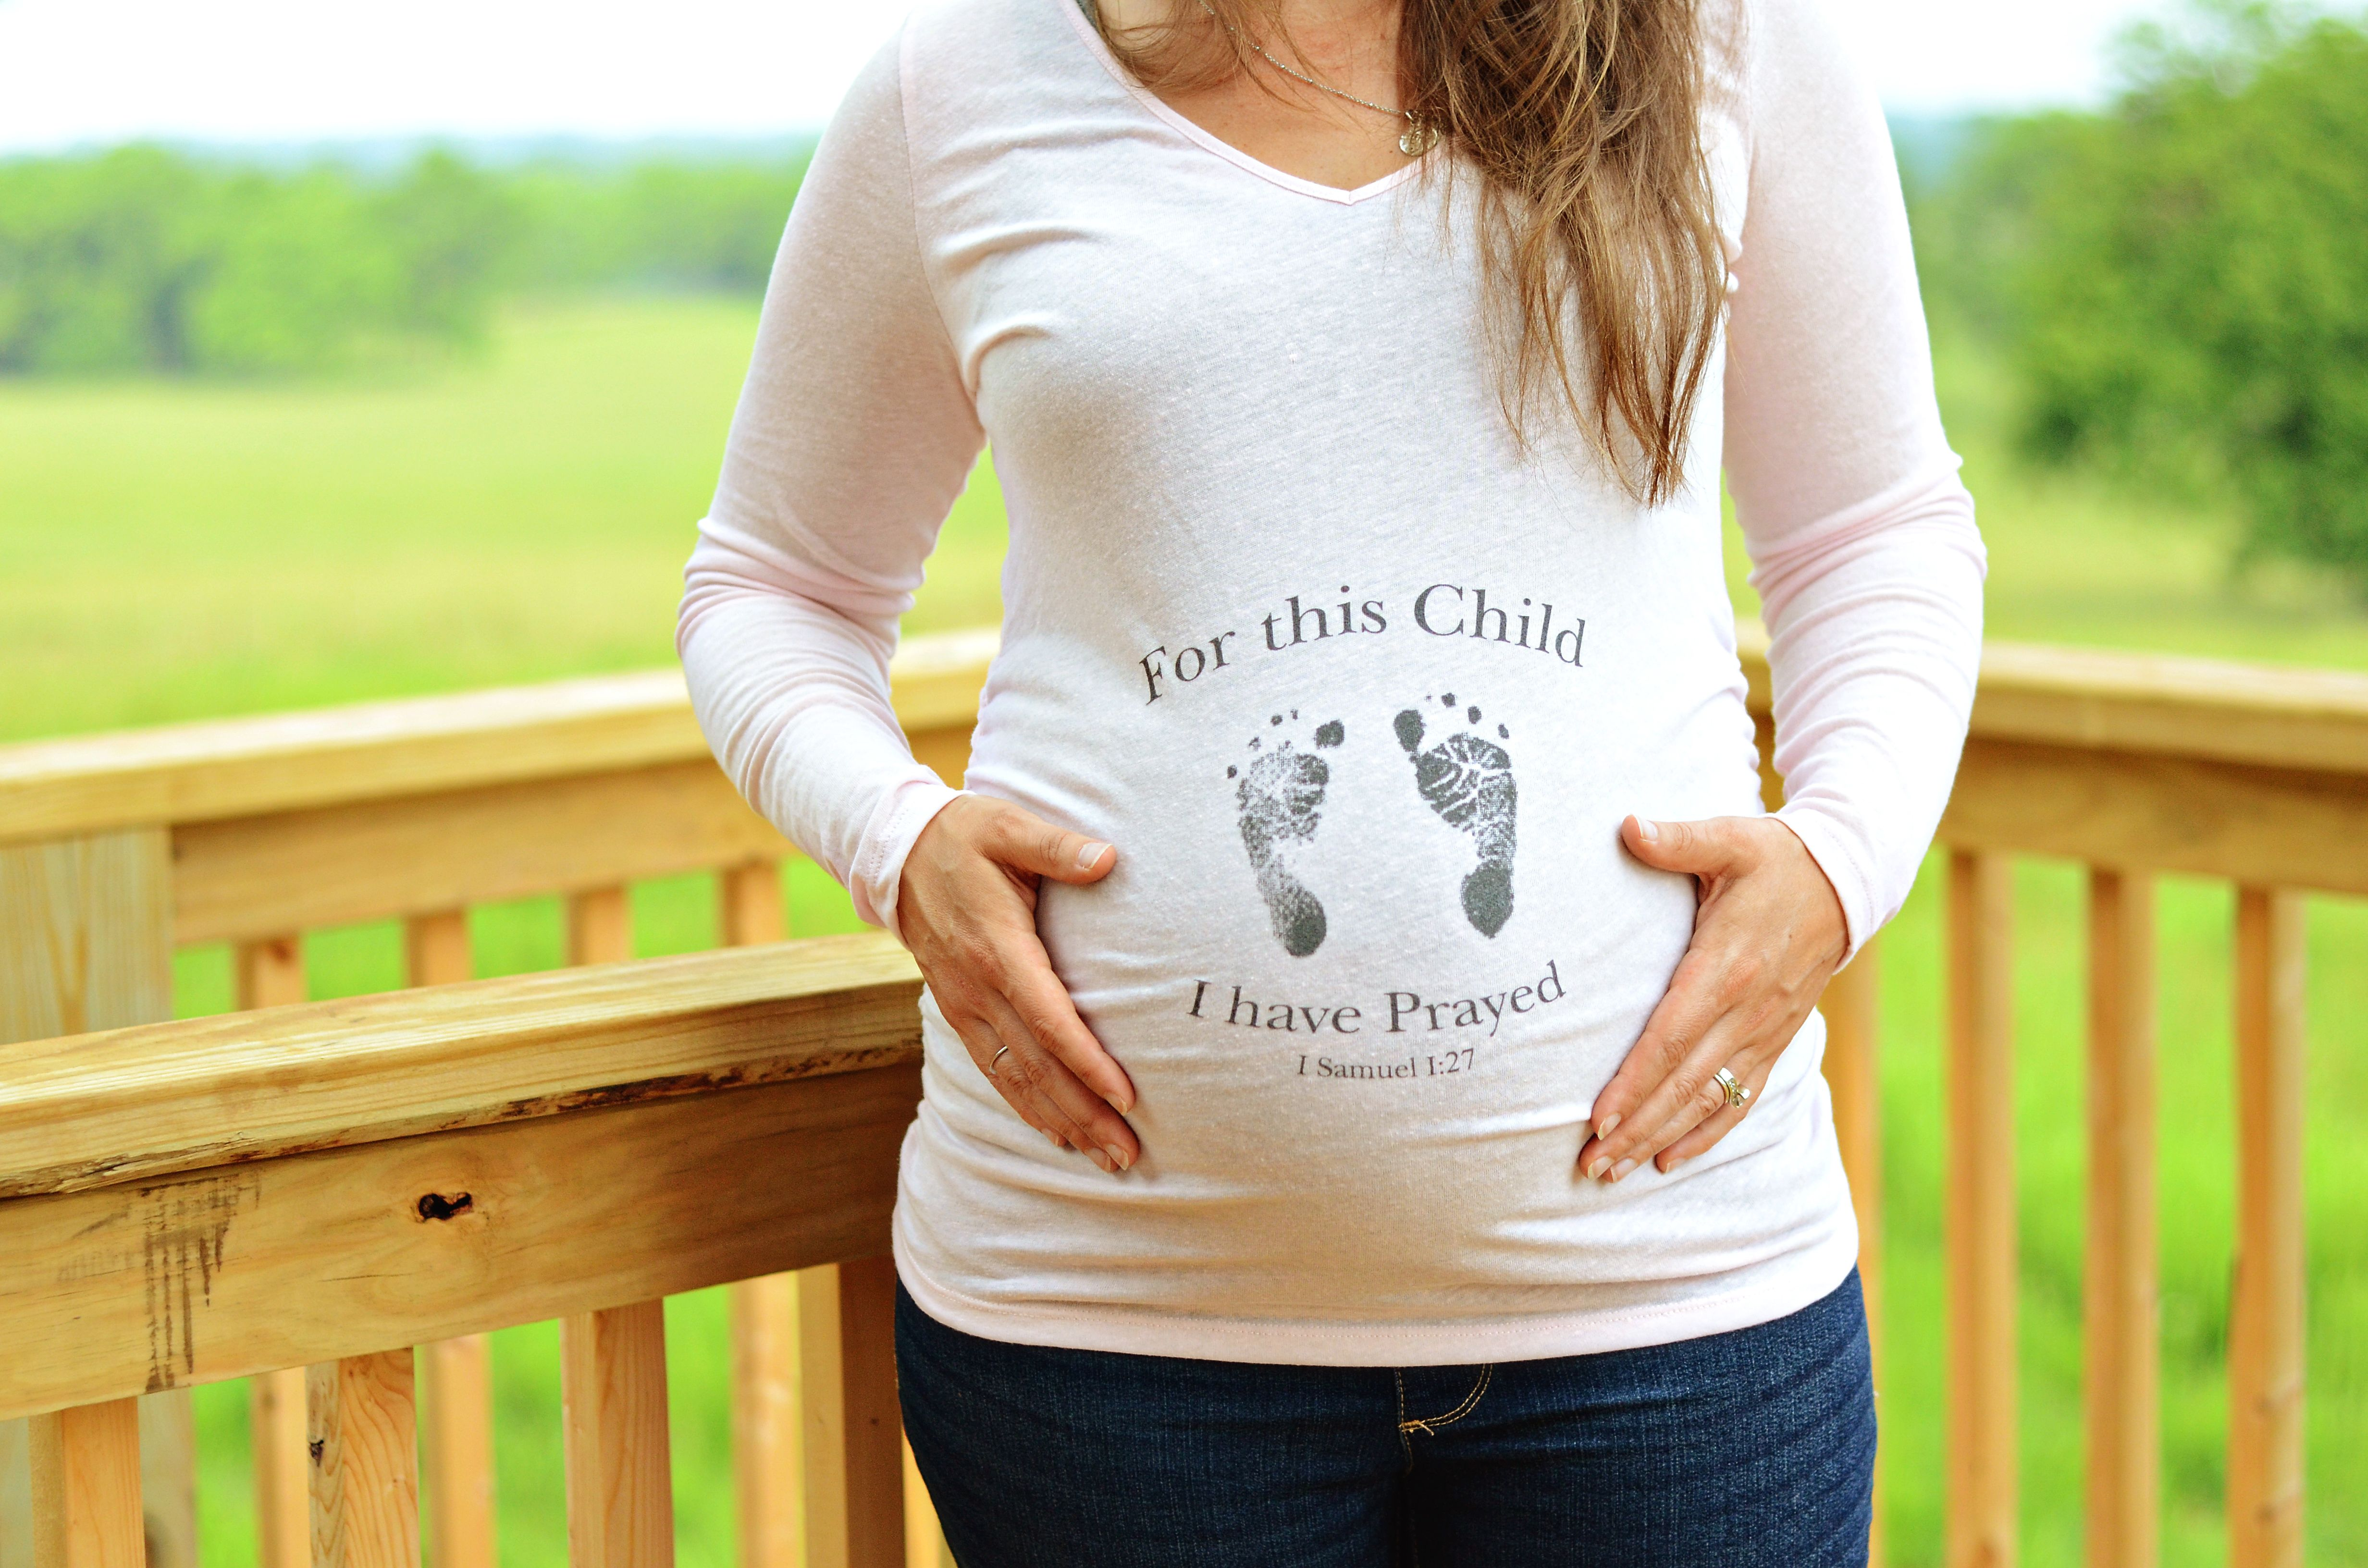 93de980aff197 Pregnant Woman Can Wear Christian Shirts Too | Products I Love ...